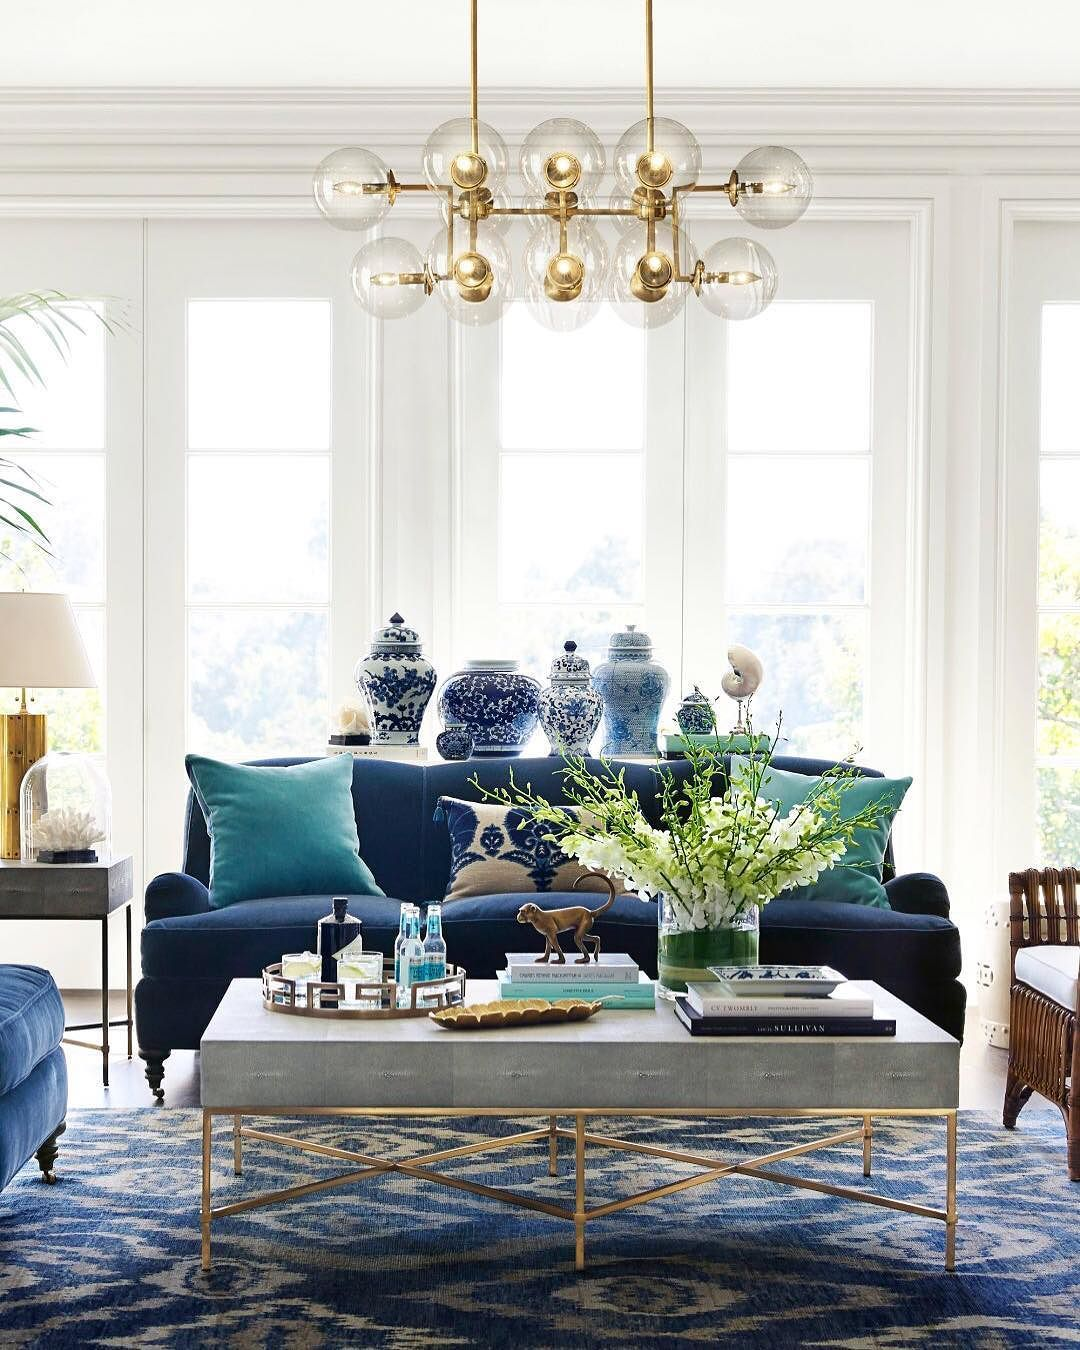 Cozy Dining Room Ideas: One Of Our Most Eye-catching Chandeliers Features 16